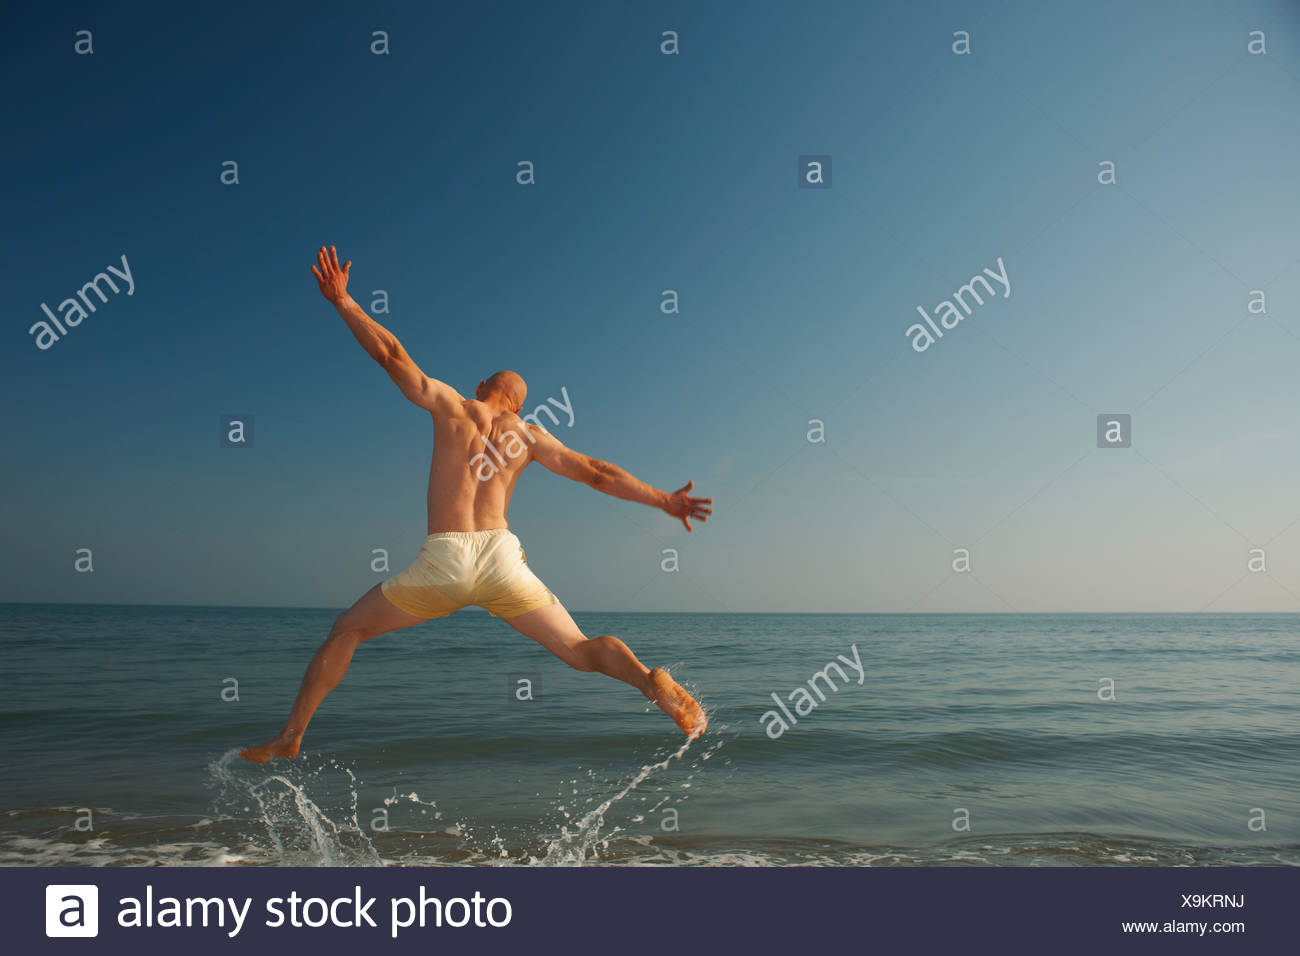 Mid adult man jumping outstretched over sea - Stock Image